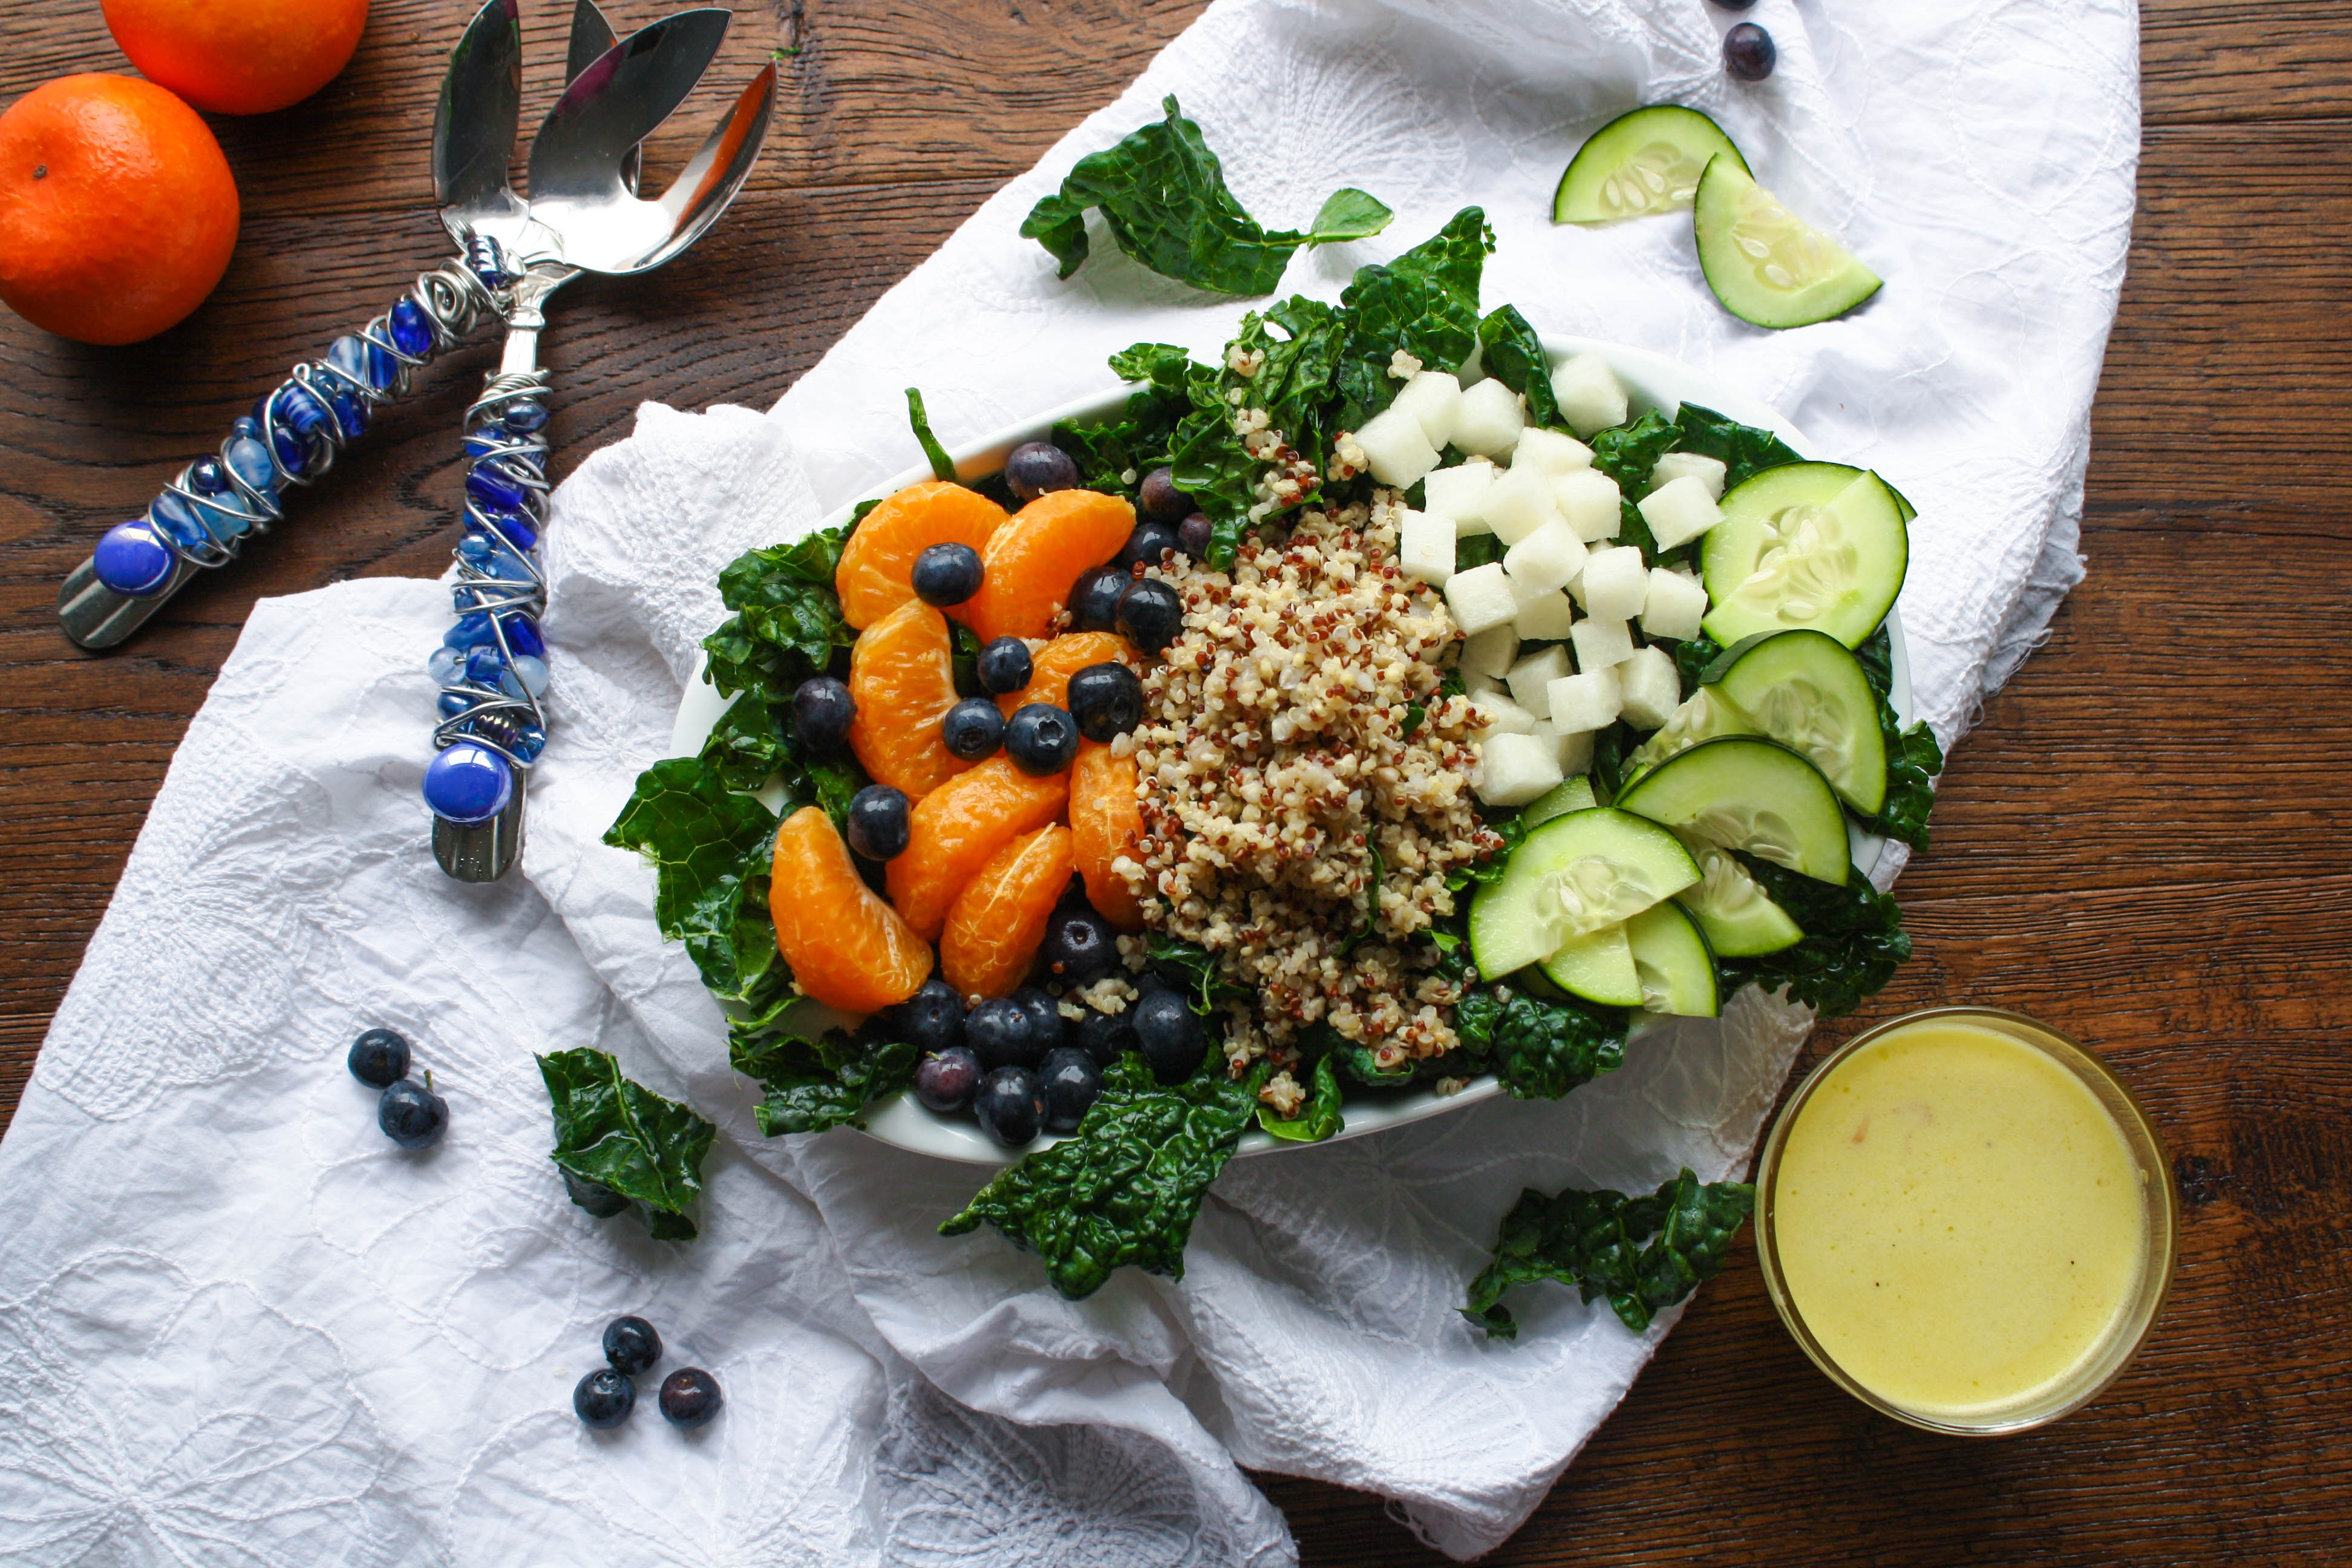 Kale-Quinoa Salad with Orange Vinaigrette is a fabulous salad! It's filled with good-for-you ingredients!